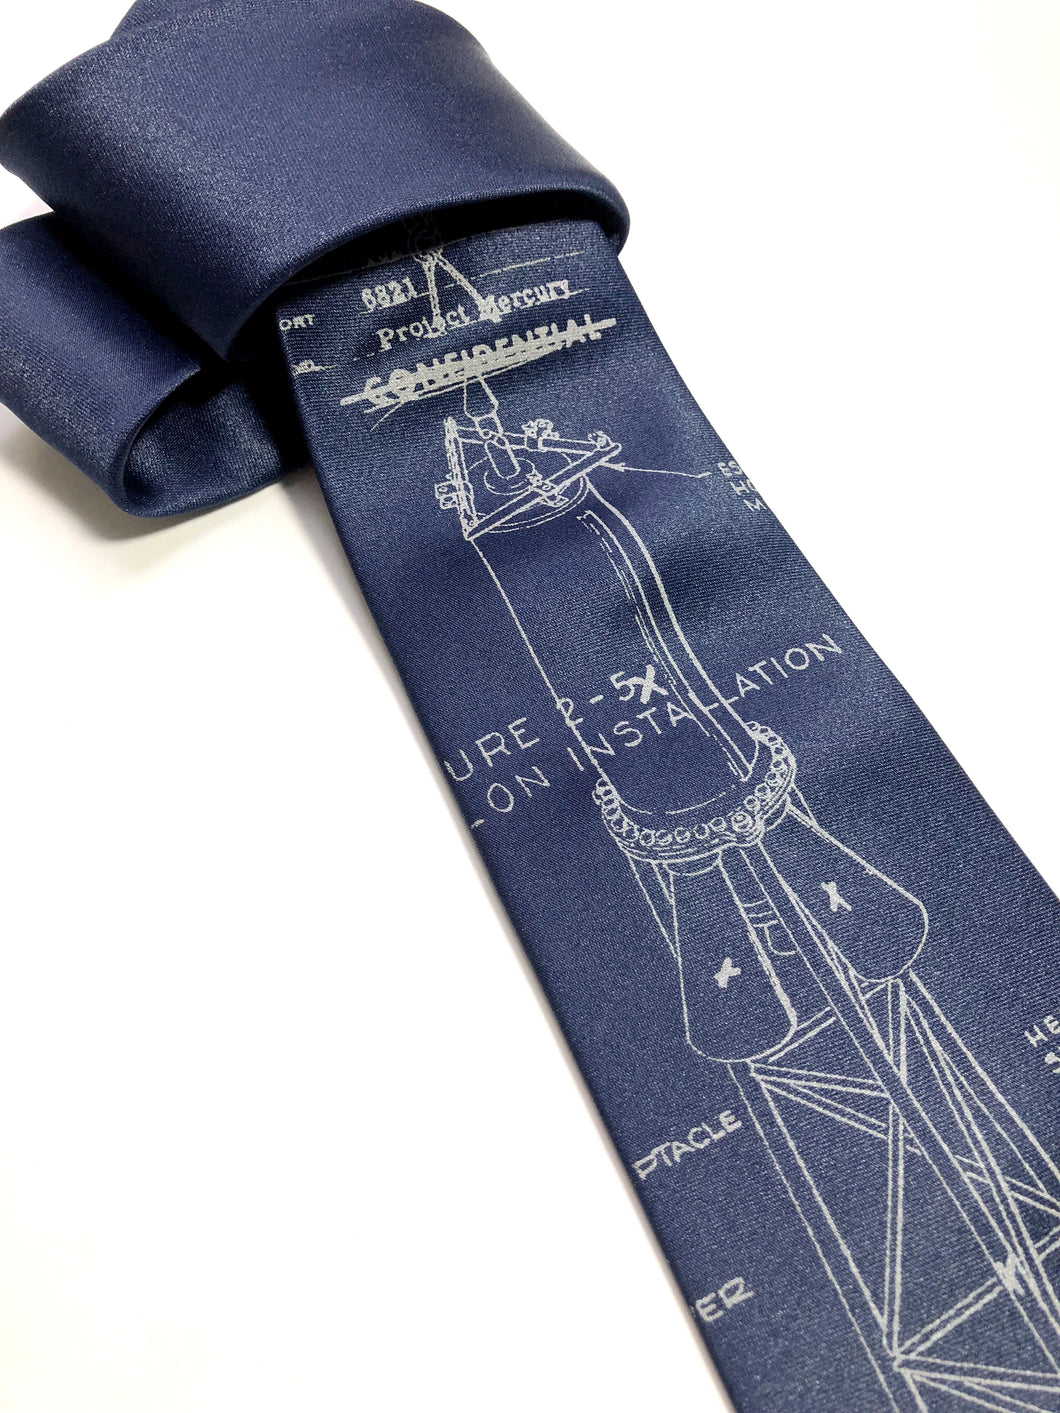 Project Mercury Necktie. NASA Space Program Tie